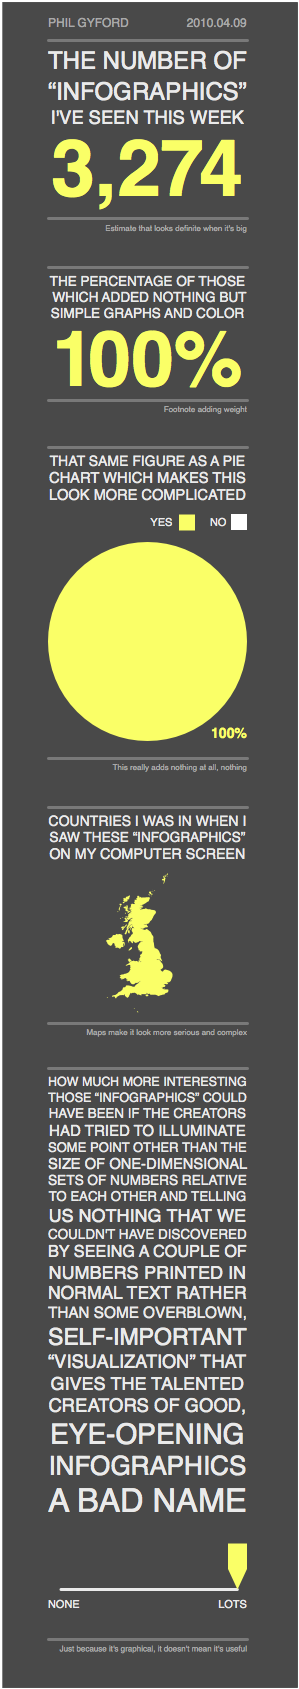 LOL-An infographic on the number of infographics I've seen this week.